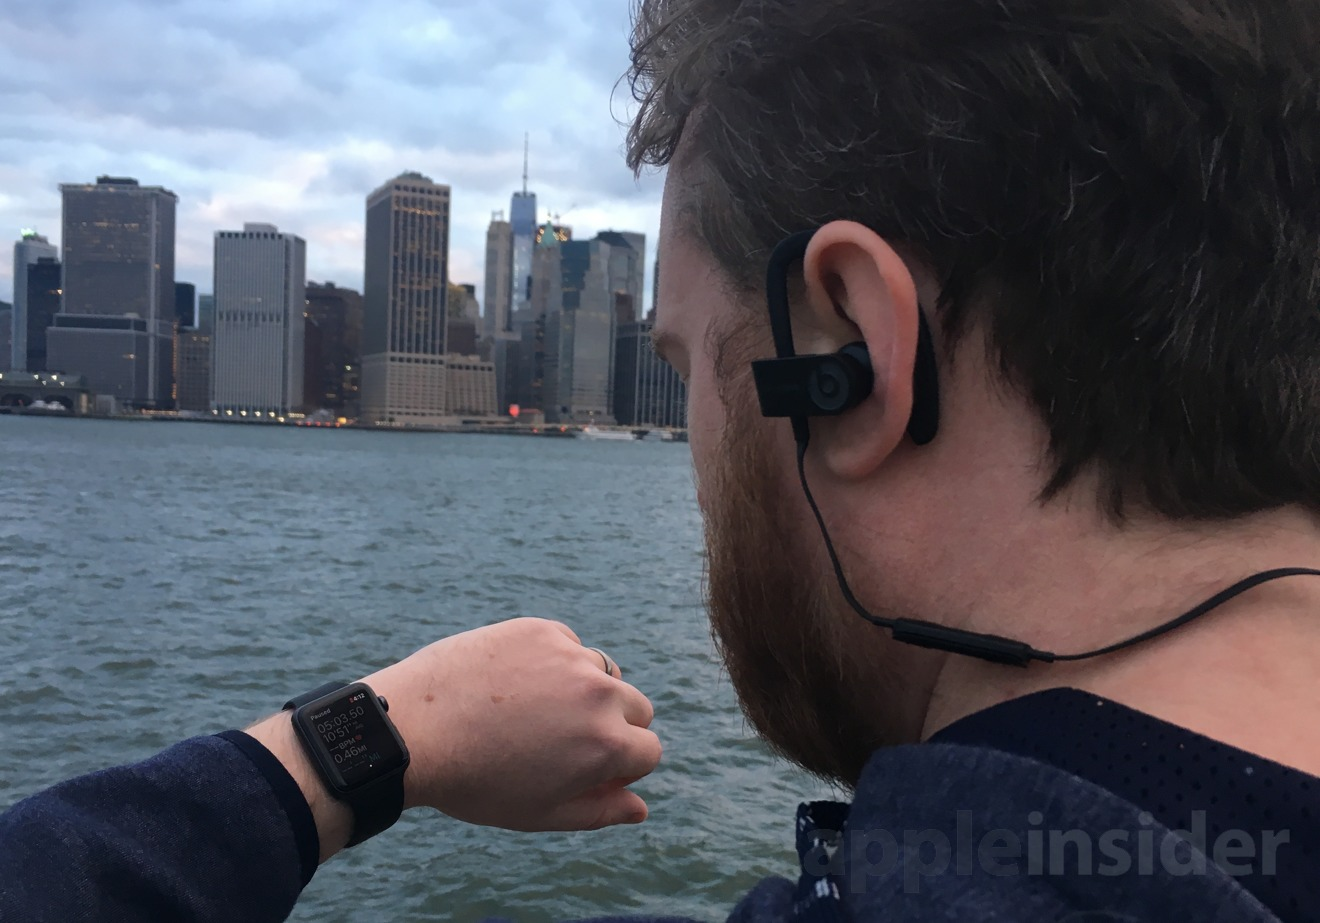 Review: Powerbeats3 with Apple W1 chip are the most reliable Bluetooth headphones we've ever used